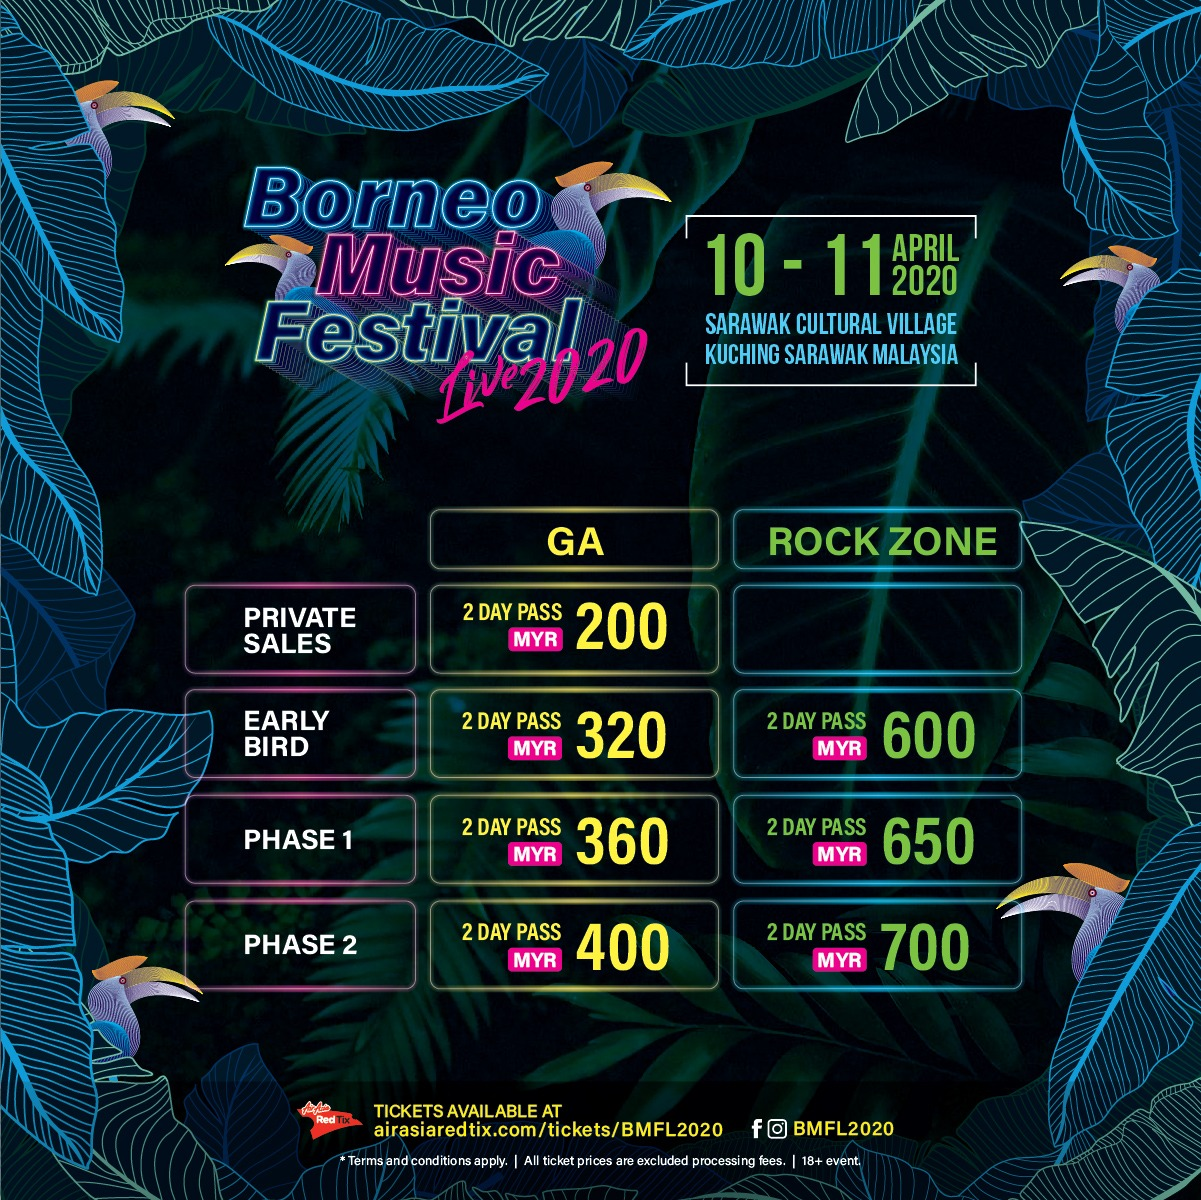 Music Festival Live 2020 ticket